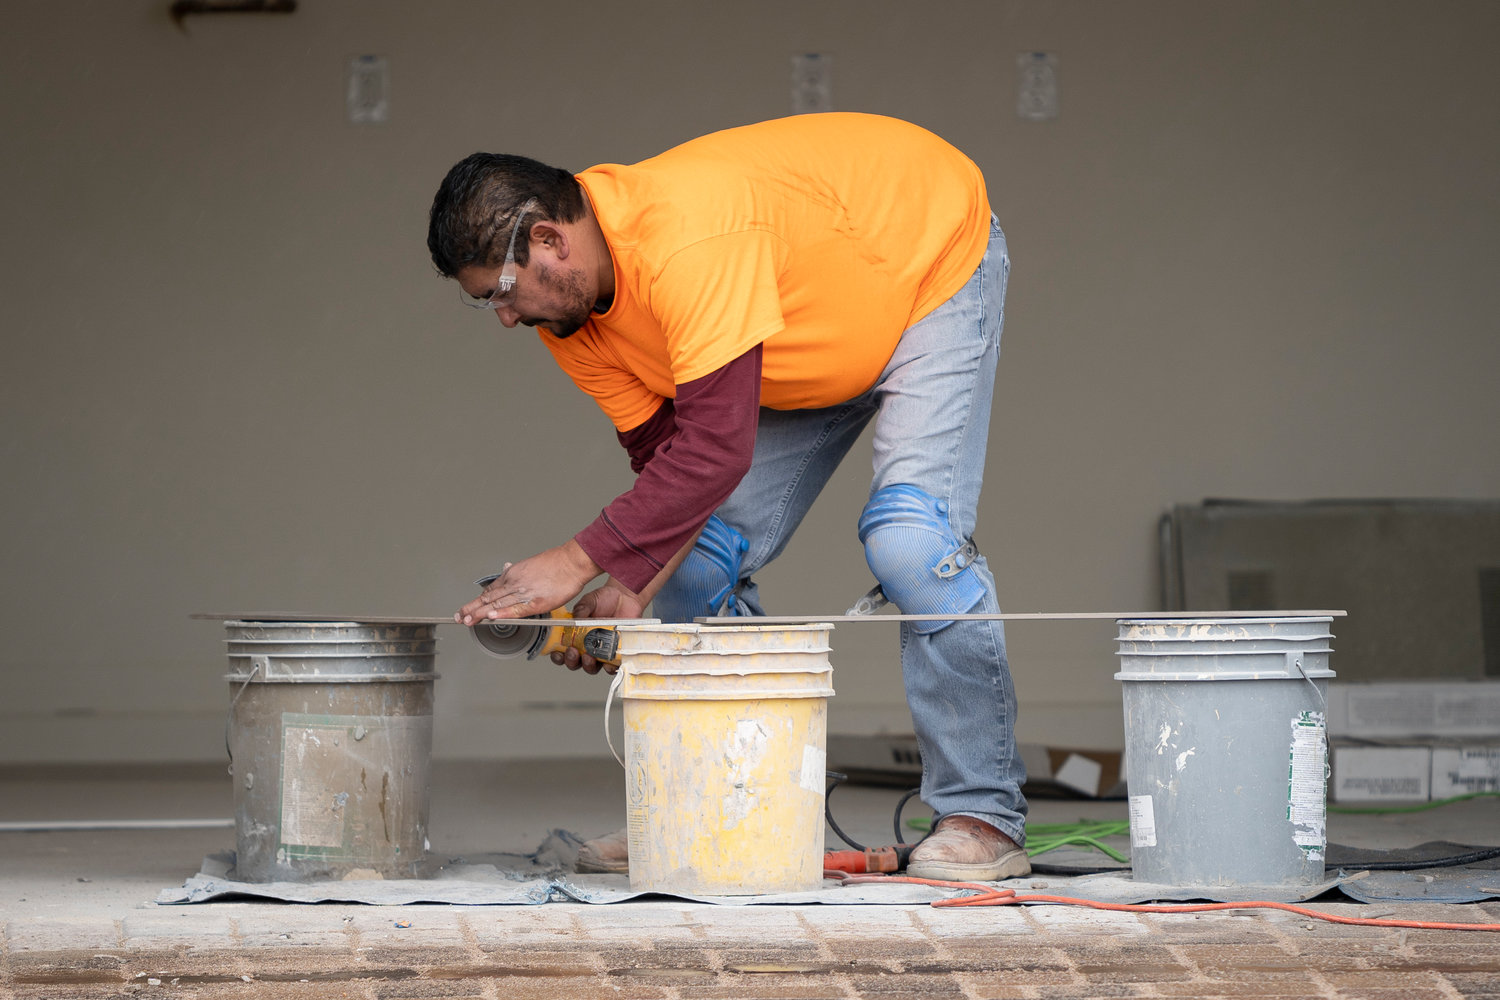 A construction worker cuts tiles at the site of a future home near 91st Avenue and Pinnacle Peak Road Feb. 14 2019 in Peoria.